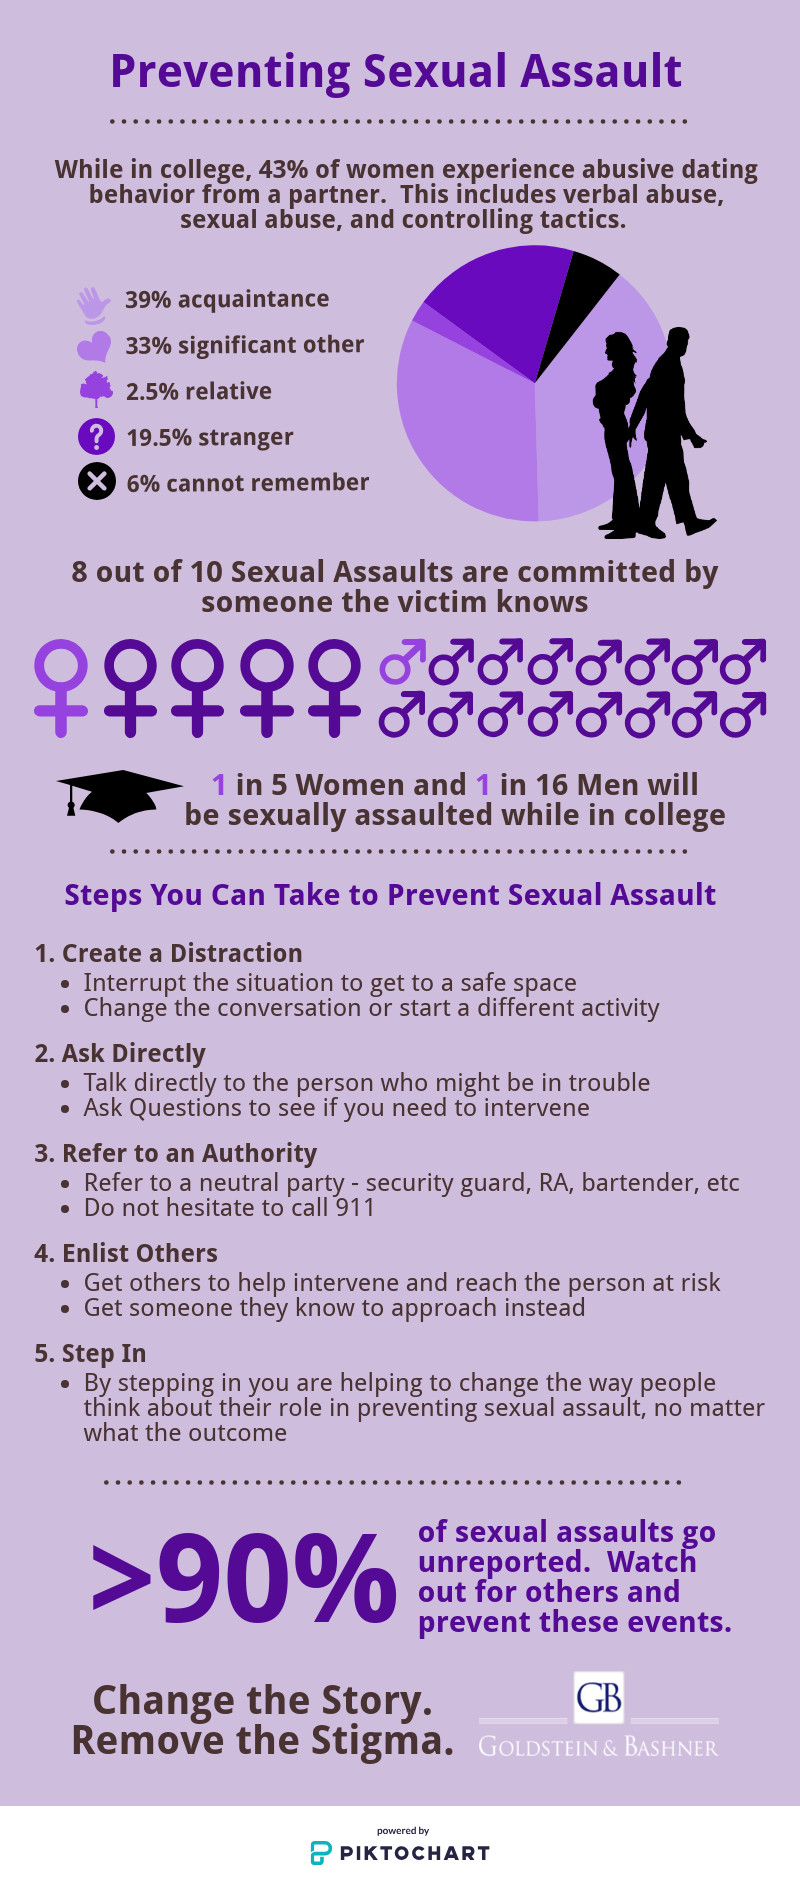 Image For Post   Our community is changing and conversations about sexual assault are becoming less taboo thanks to the #MeToo movement and those that speak out.  As the floor opens to discussing these events, we can also talk about preventing them in the first place. This infographic covers some statistics on sexual assault in America and describes some ways to prevent sexual assault from occurring in the first place. Please help us share this prevention information so we can stop sexual assault before it starts.  #ChangeTheStory #RemoveTheStigma #PreventSexualAssault   References: RAINN, National Institute of Justice, and the Community Guide.  https://www.eglaw.com/civil-justice-for-sexual-assault-victims/#infographic